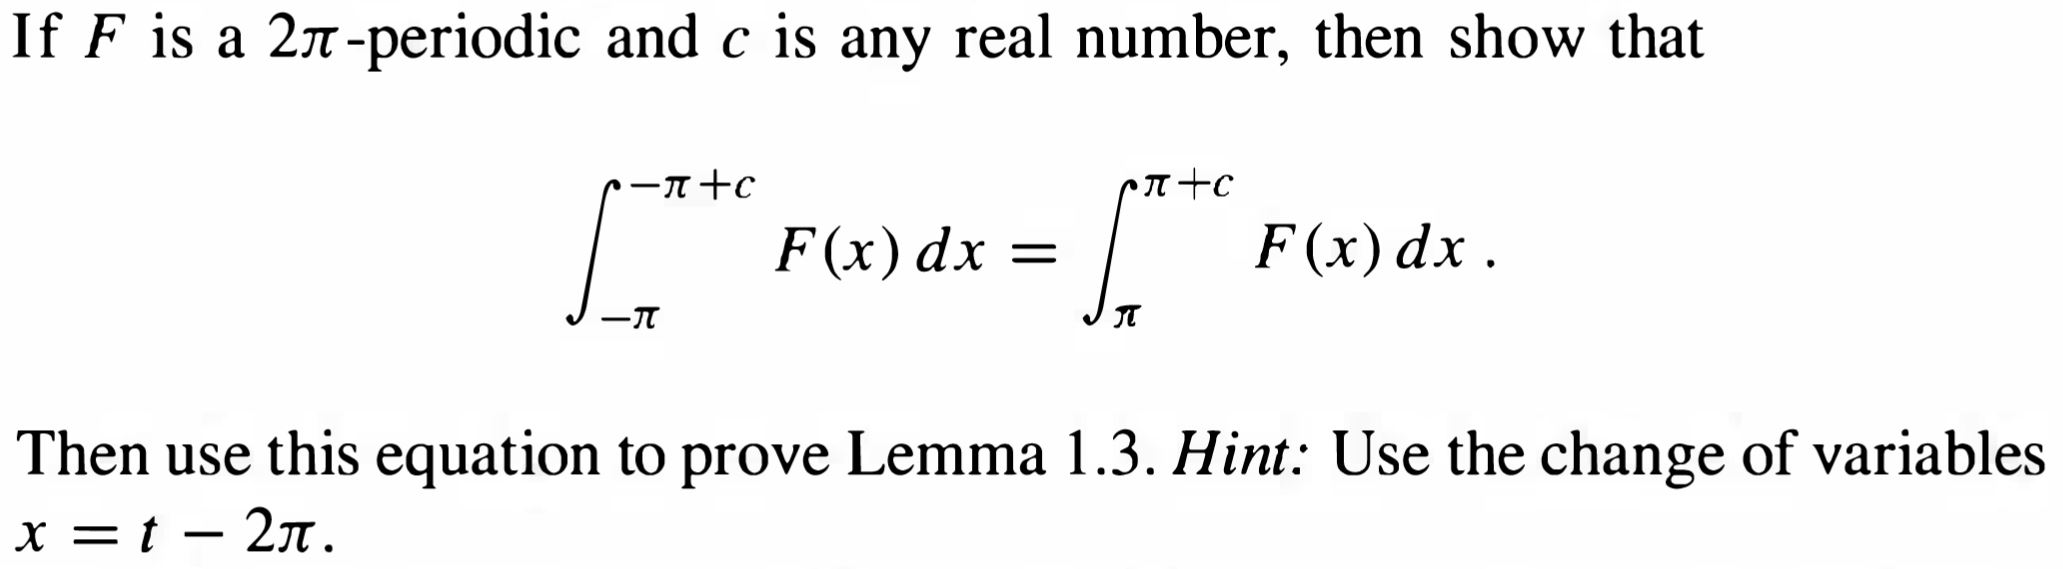 If F is a 24-periodic and c is any real number, then show that r-r+c prto I F(x) dx = F(x)dx. J -N Then use this equation to